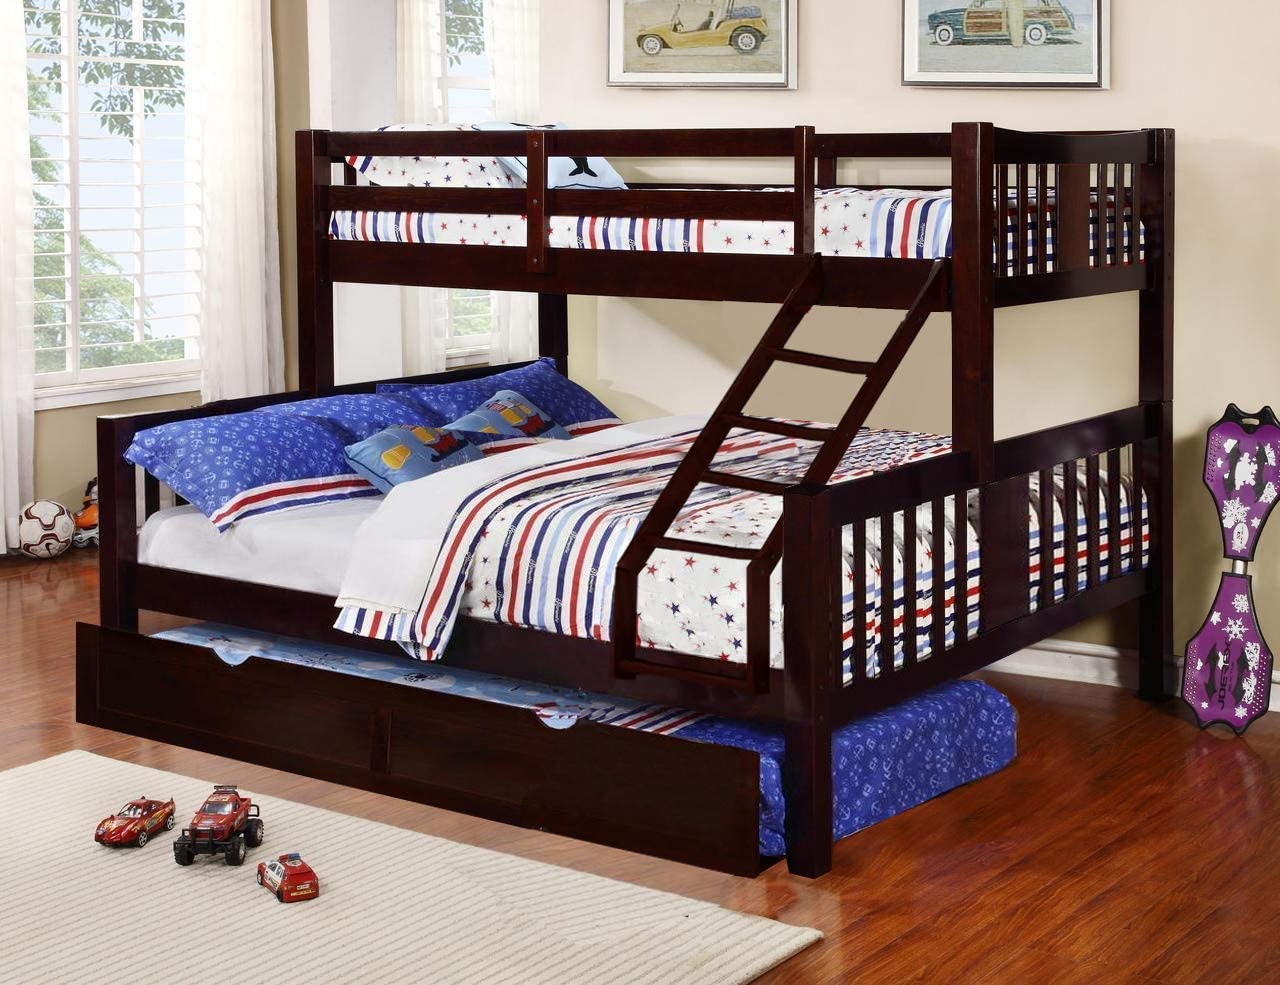 Aprodz Ashmo Espresso Twin Over Queen Bunk Bed with Trundle: Amazon.in: Home & Kitchen